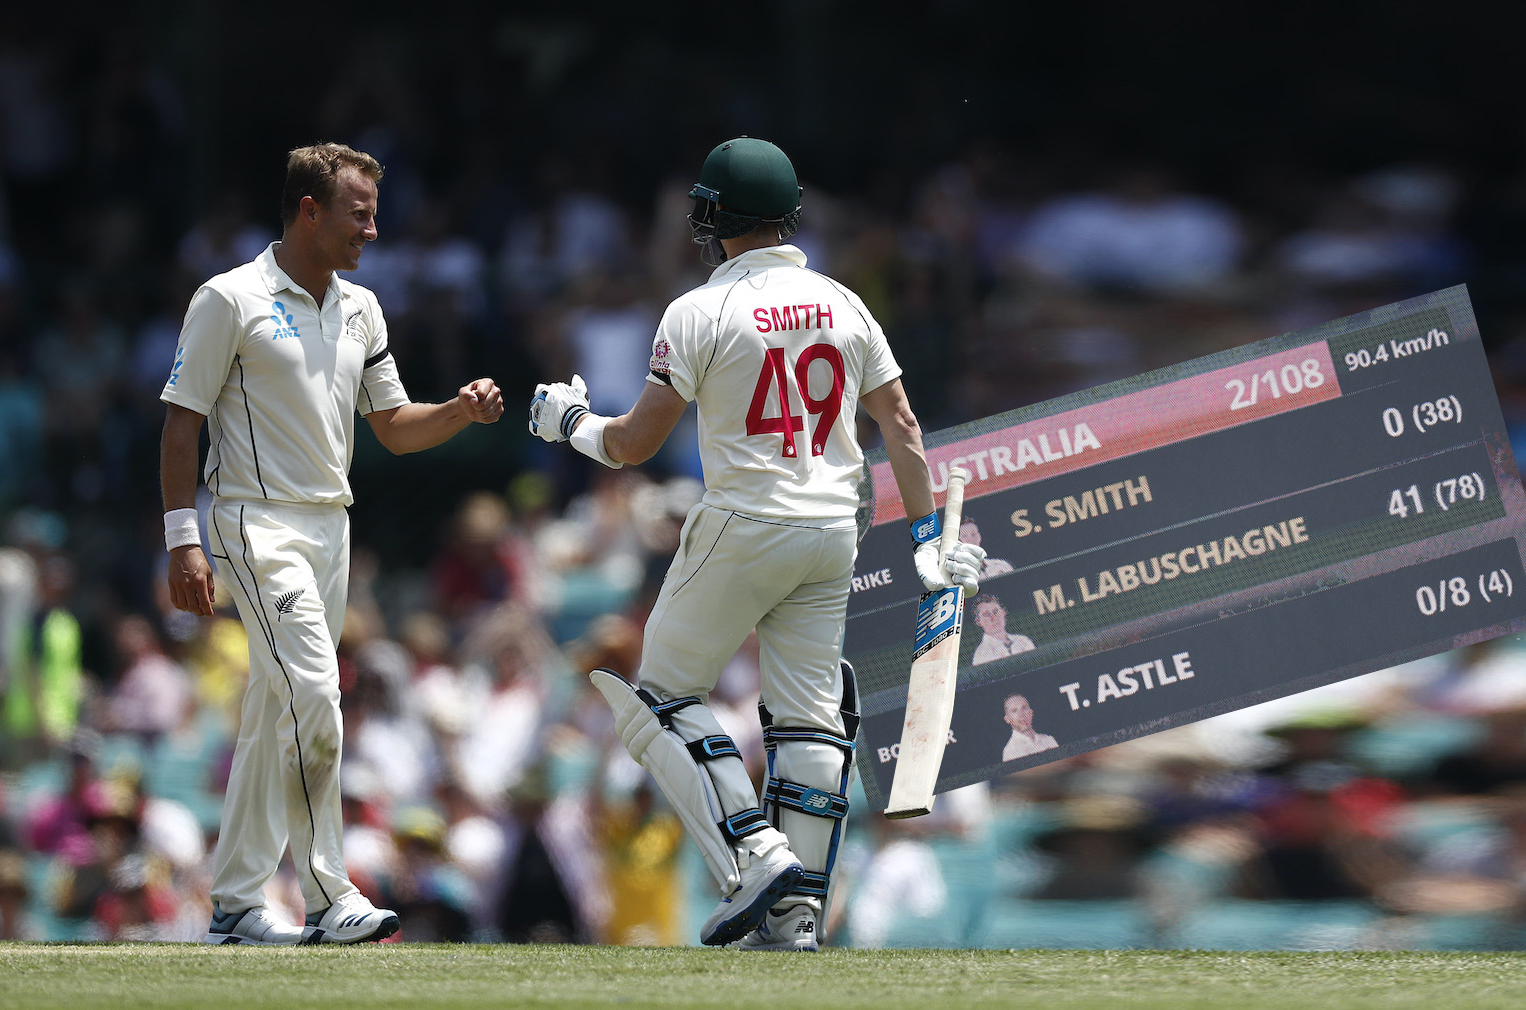 SYDNEY, AUSTRALIA - JANUARY 03: Steve Smith of Australia fist bumps Neil Wagner of New Zealand after scoring his first run after facing 39 balls during day one of the Third Test match in the series between Australia and New Zealand at Sydney Cricket Ground on January 03, 2020 in Sydney, Australia. (Photo by Ryan Pierse/Getty Images)